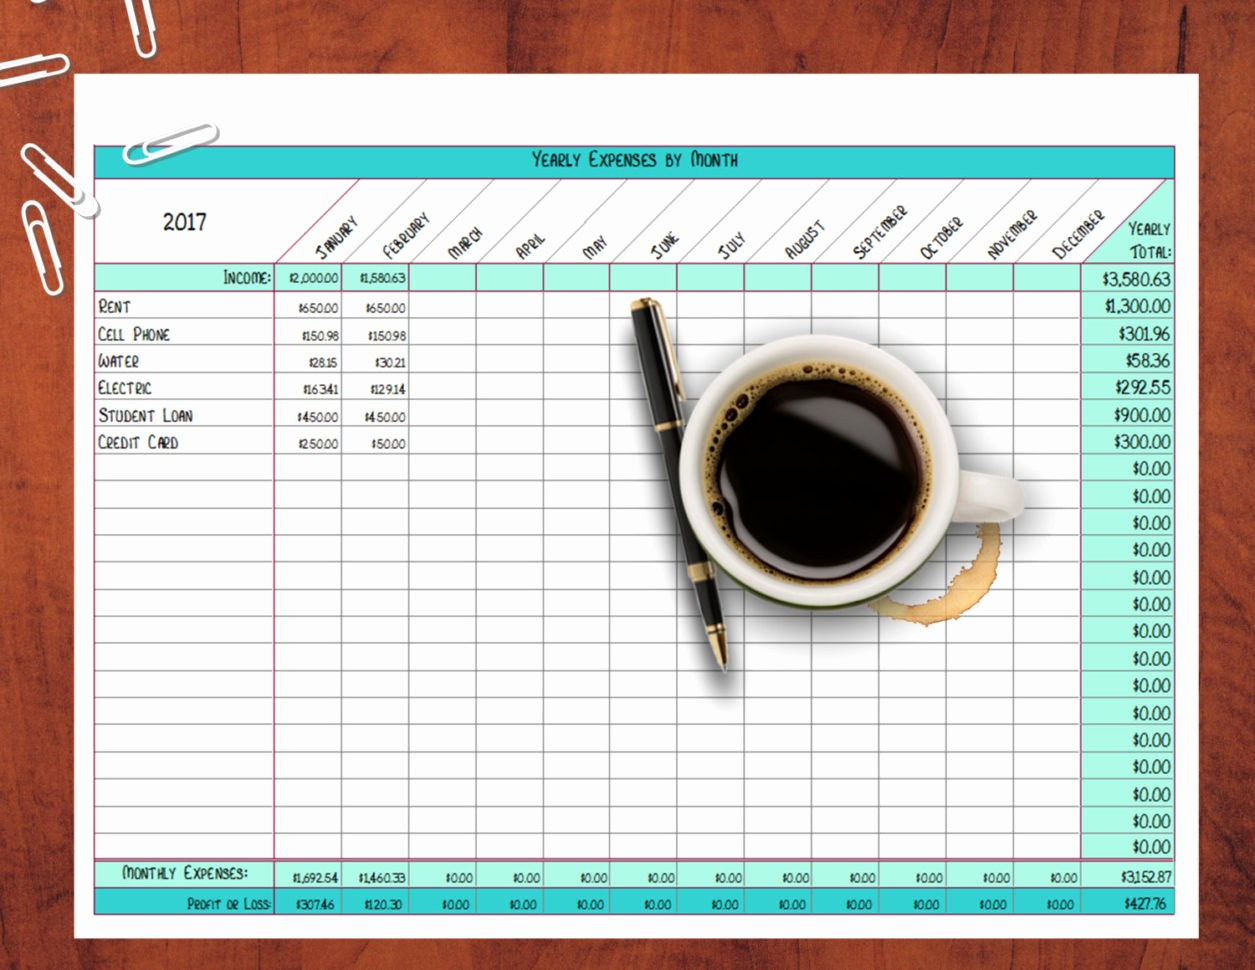 Small Business Expense Tracking Excel Unique Small Business Expense Spreadsheet Template How to Track